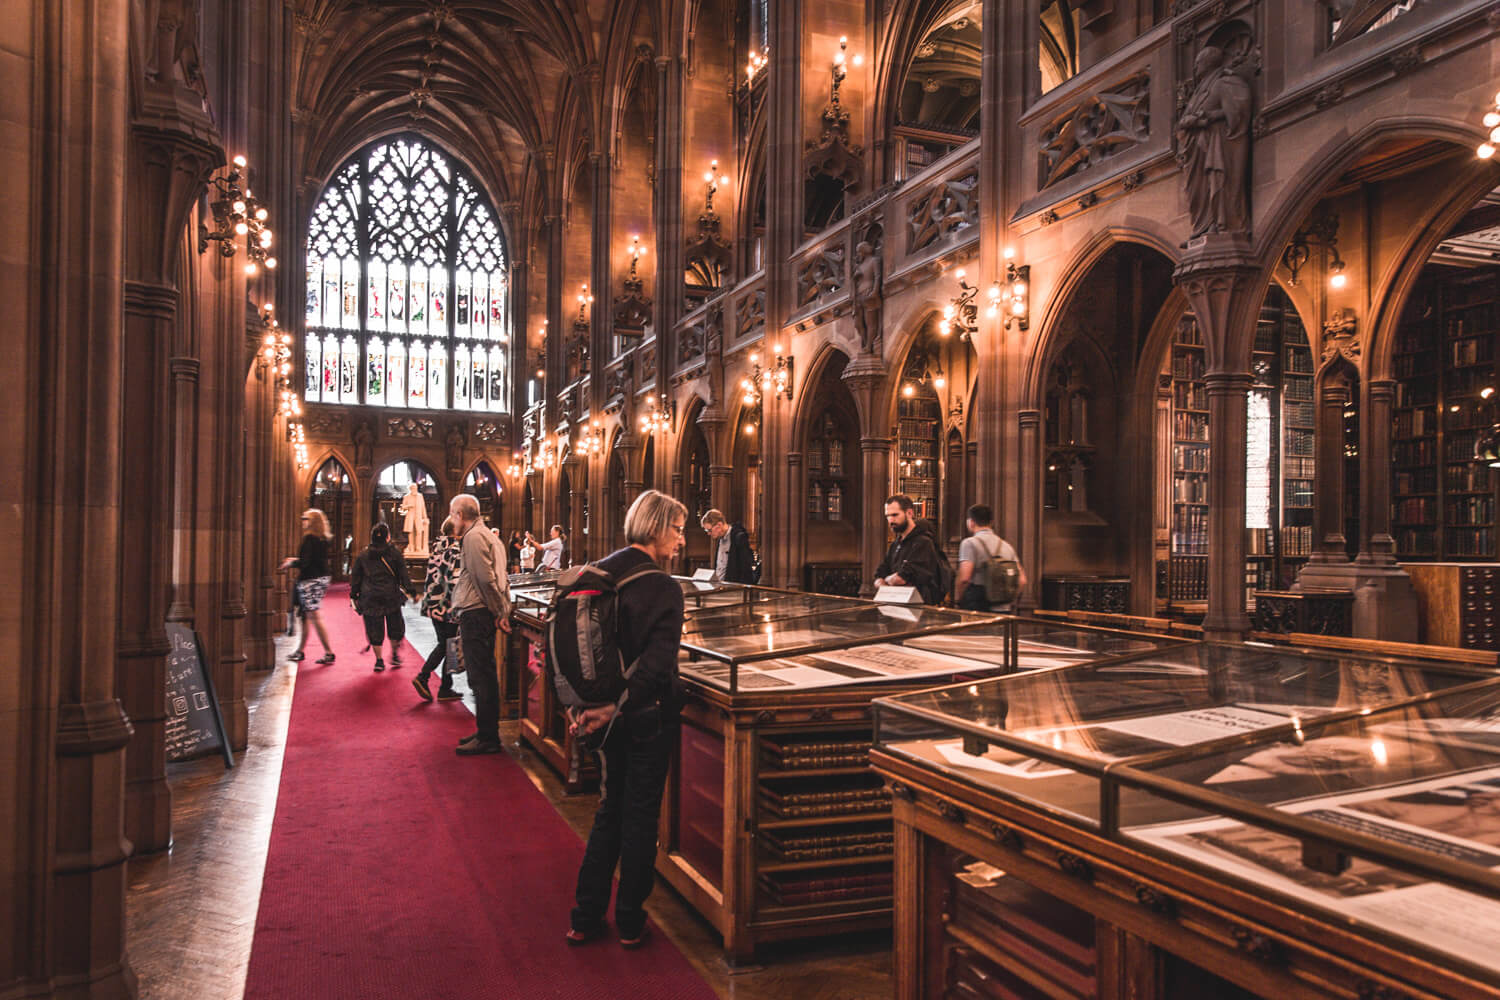 John Rylands Library in Manchester, UK has beautiful architecture with lights, desks, pretty windows, and a red carpet.